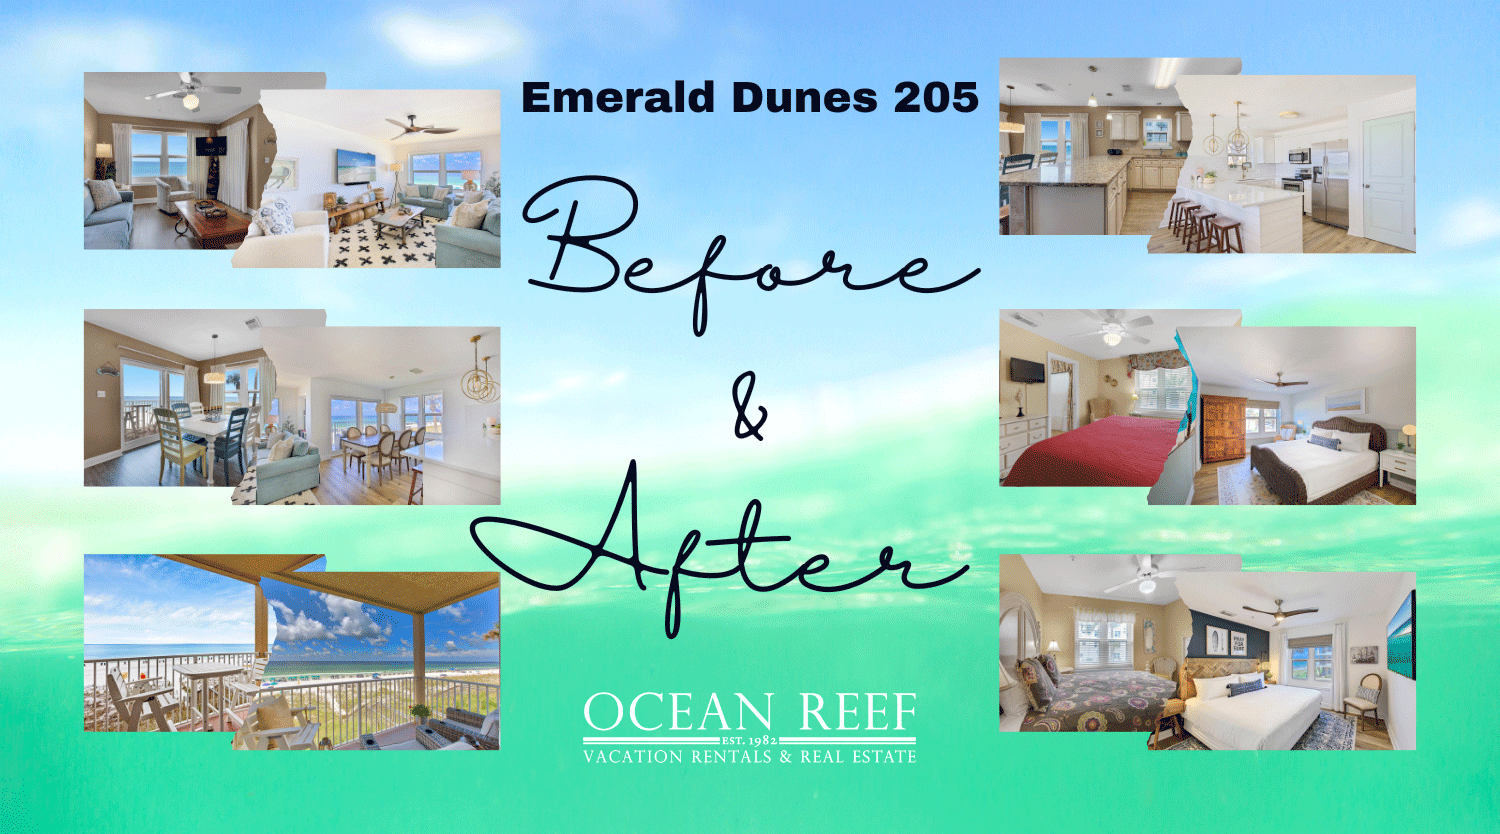 Emerald Dunes 205 Before & After